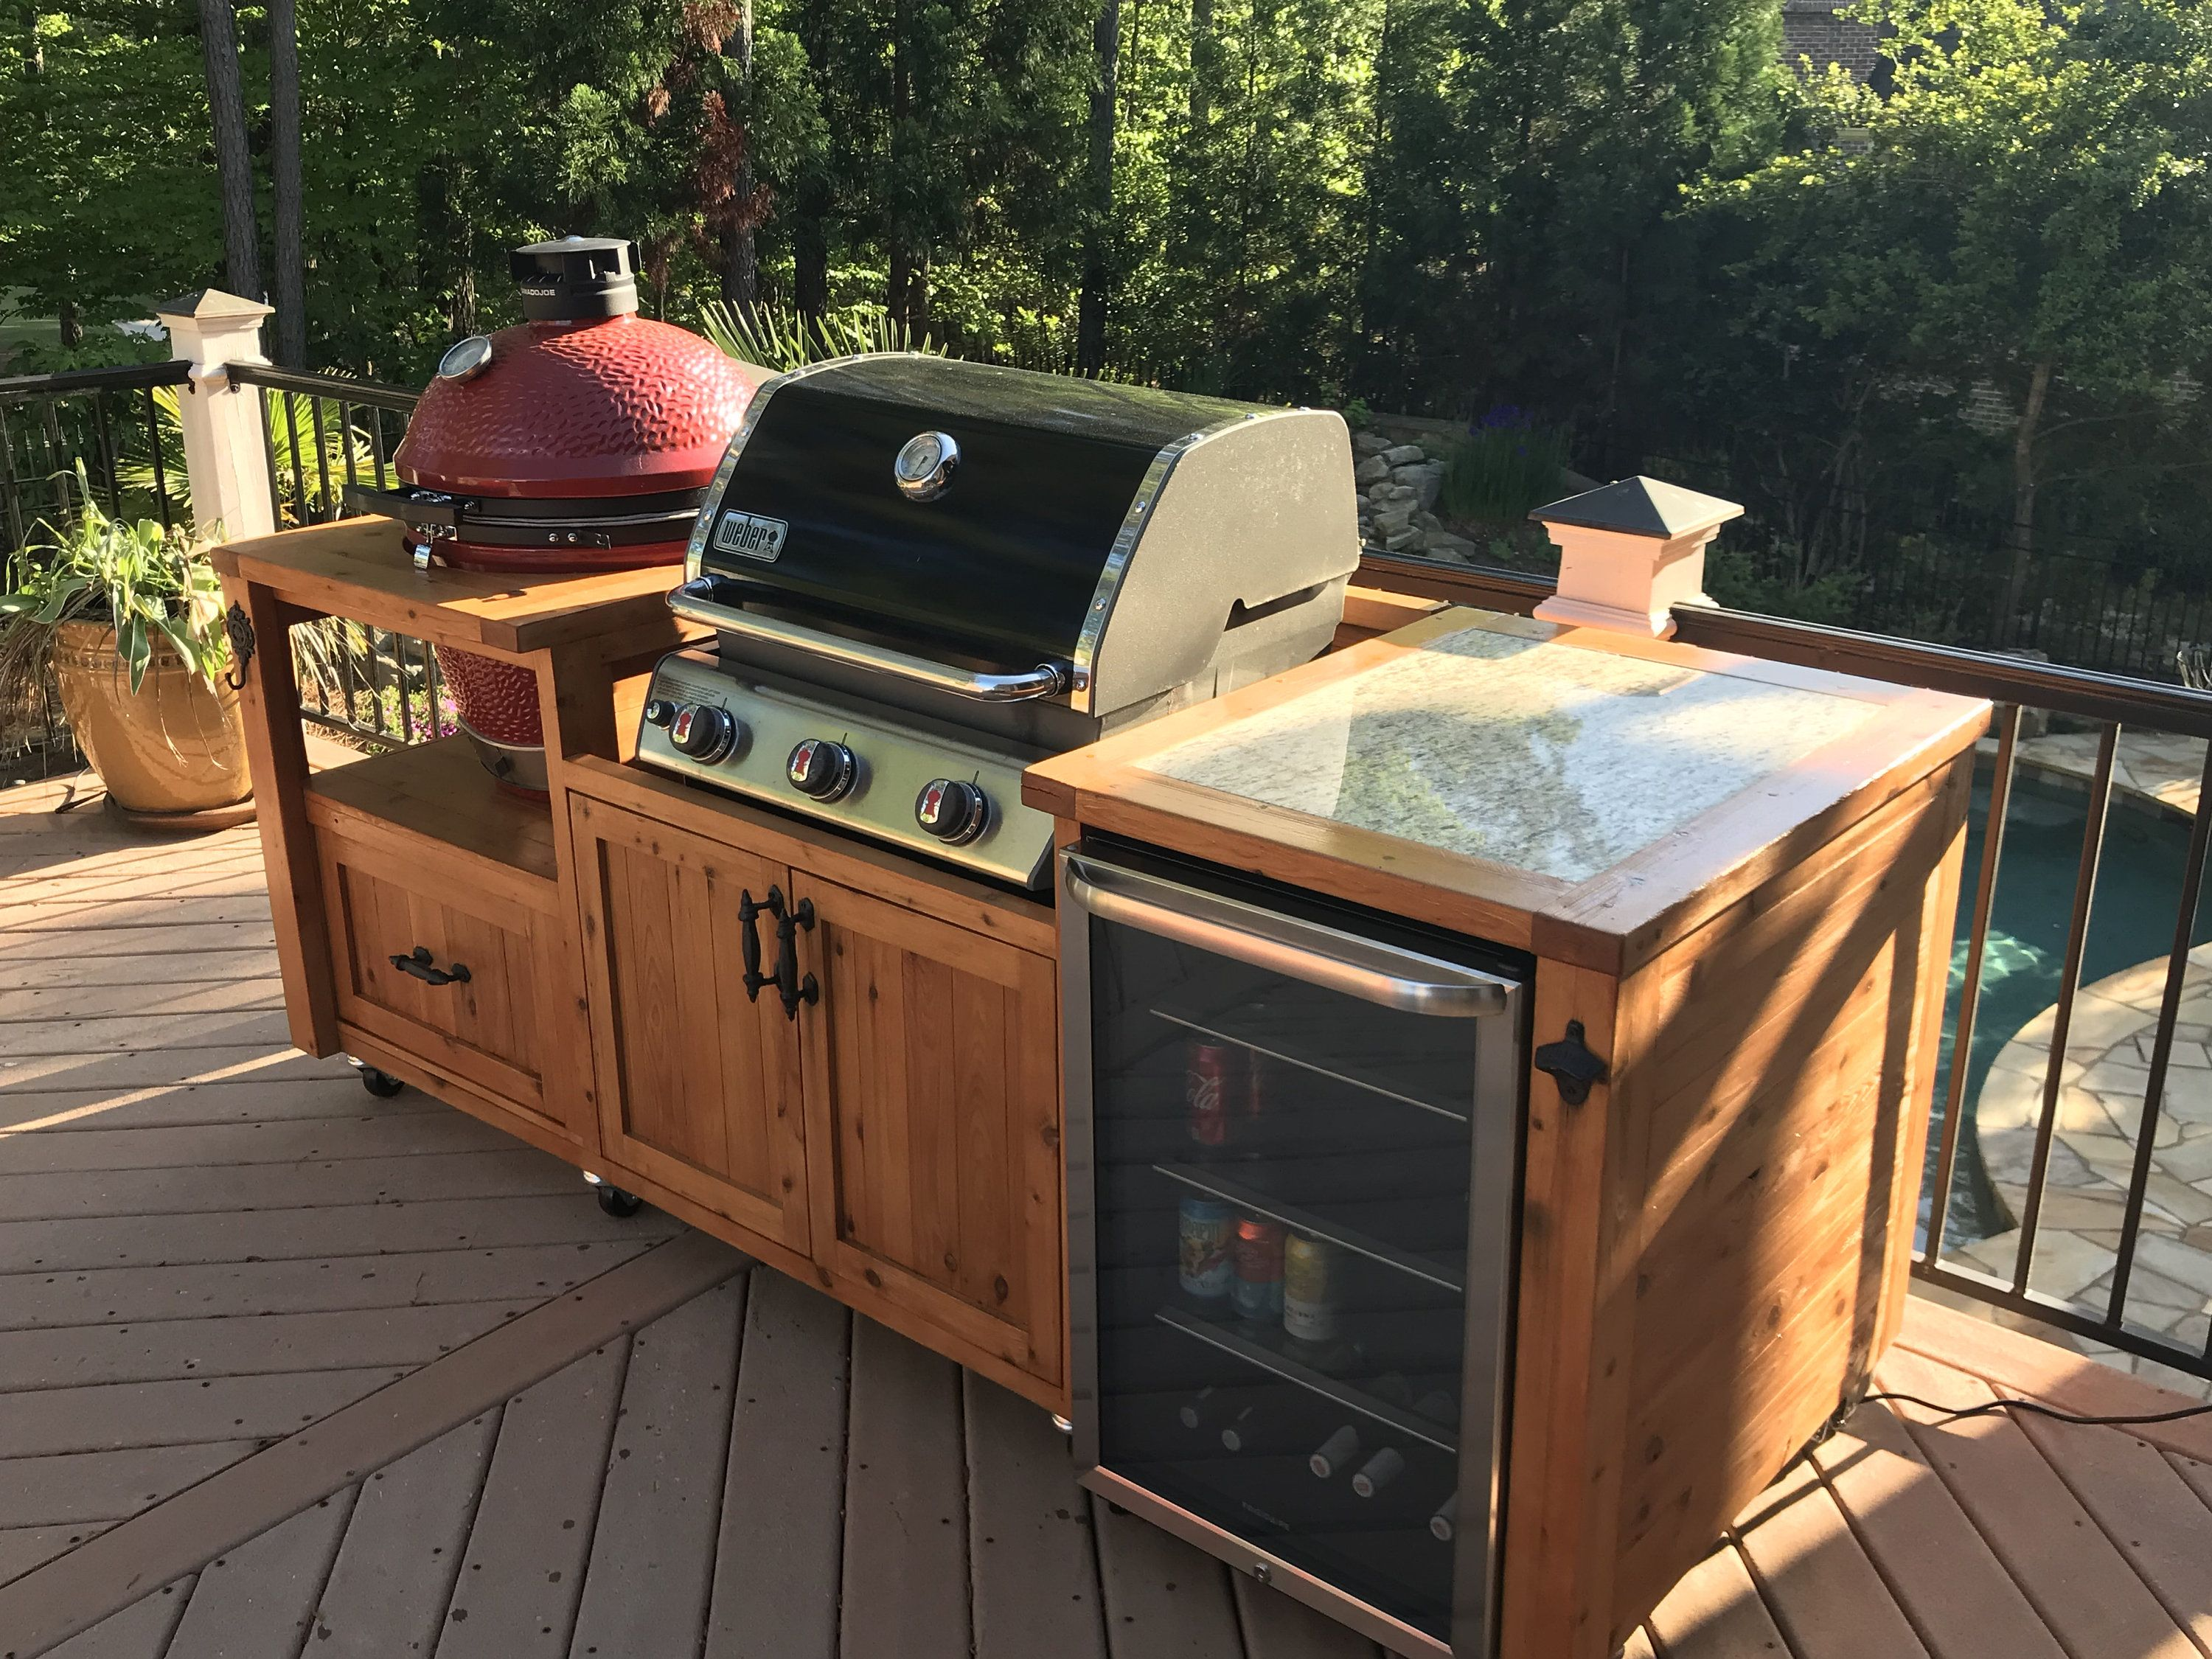 Custom Outdoor Kitchen Dual Grill Cabinet Beverage Bar And Grill Tables For Big Green Egg Kamado Joe Primo Akorn Vision And More Outdoor Kitchen Decor Kitchen Grill Outdoor Kitchen